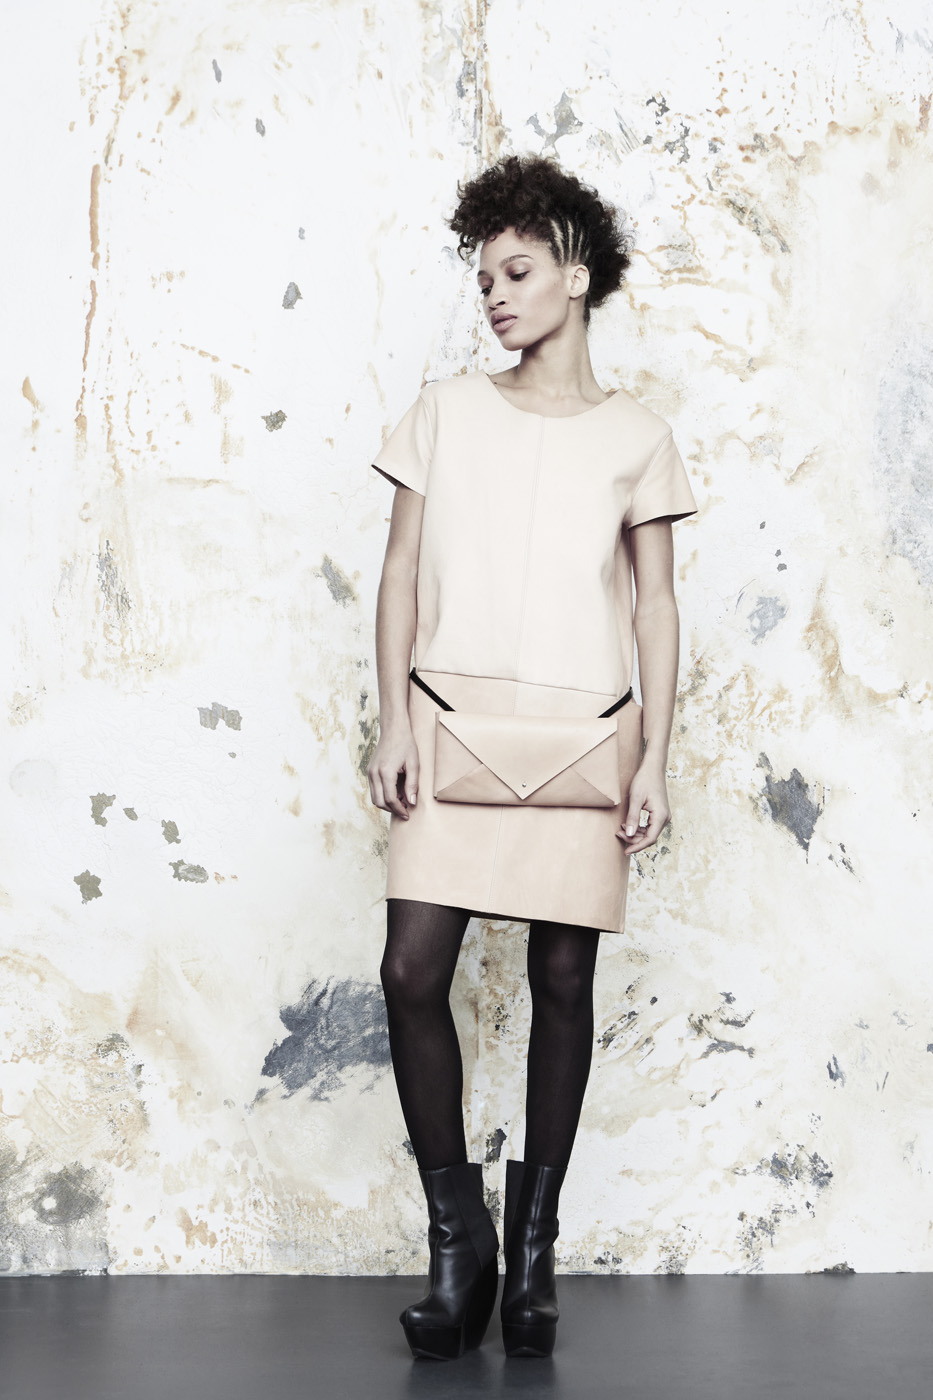 Dyad Dress and Envelope Fannypack in veg-tanned cowhide.